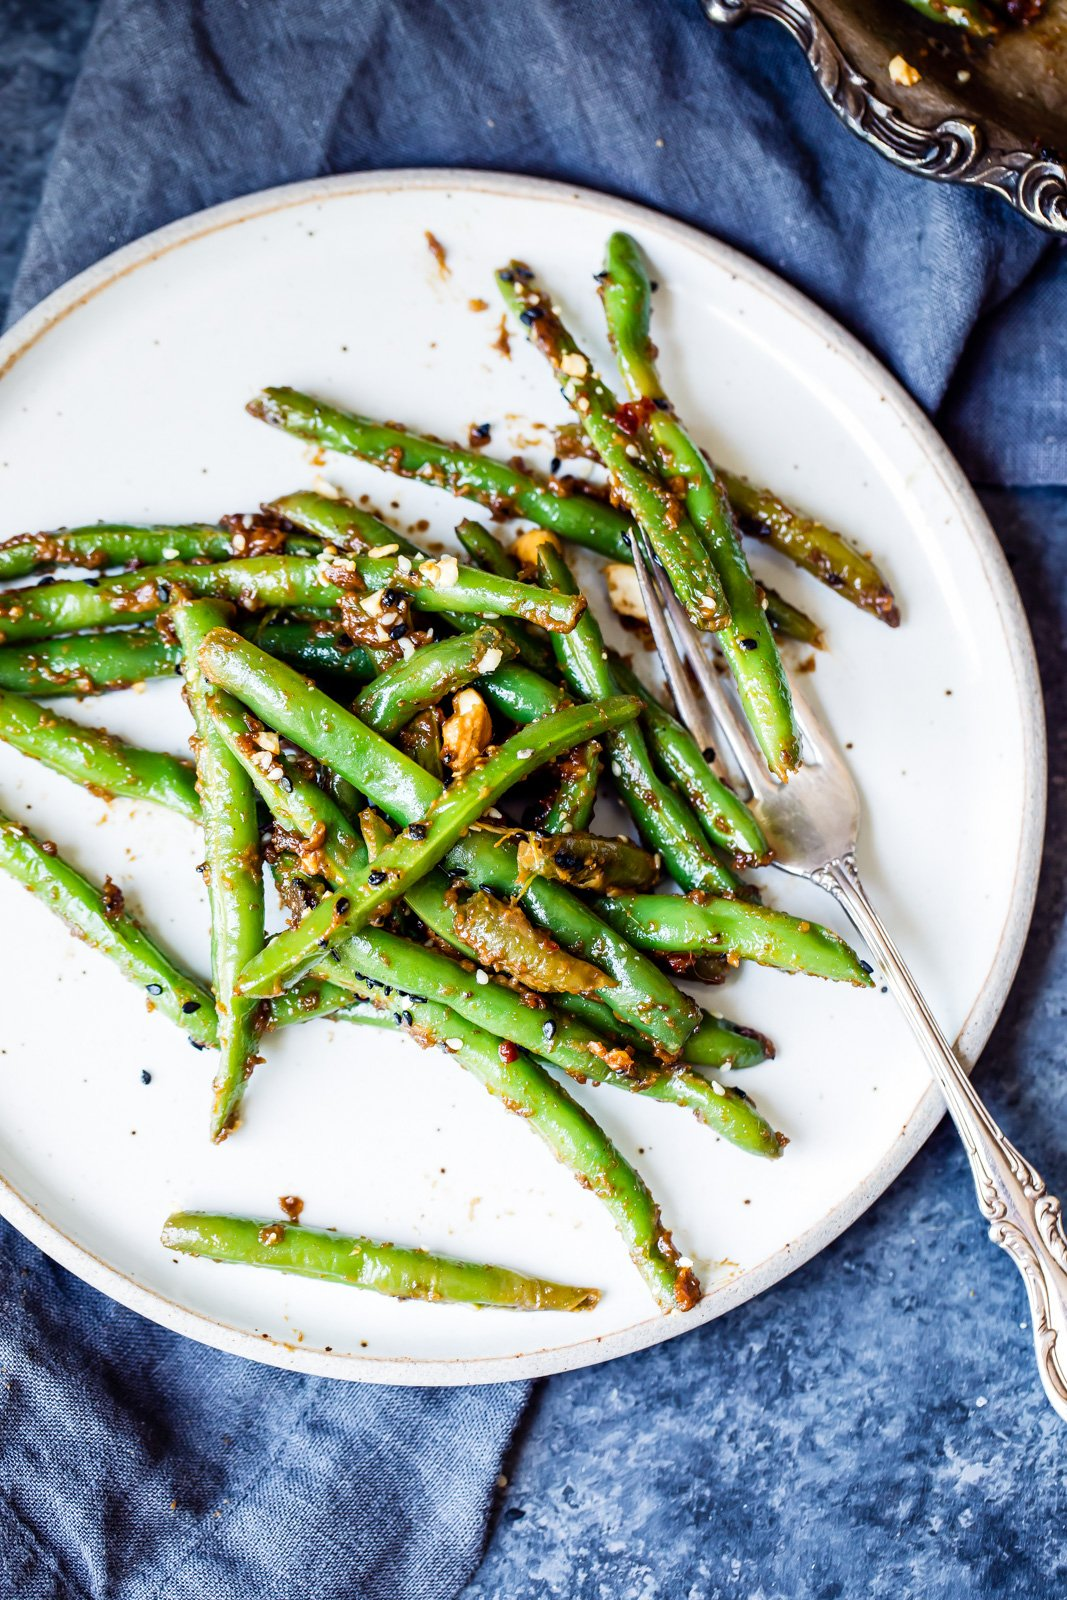 Thai Green Beans made on the stovetop with a delicious easy peanut sauce. These will be your new favorite way to eat green beans!